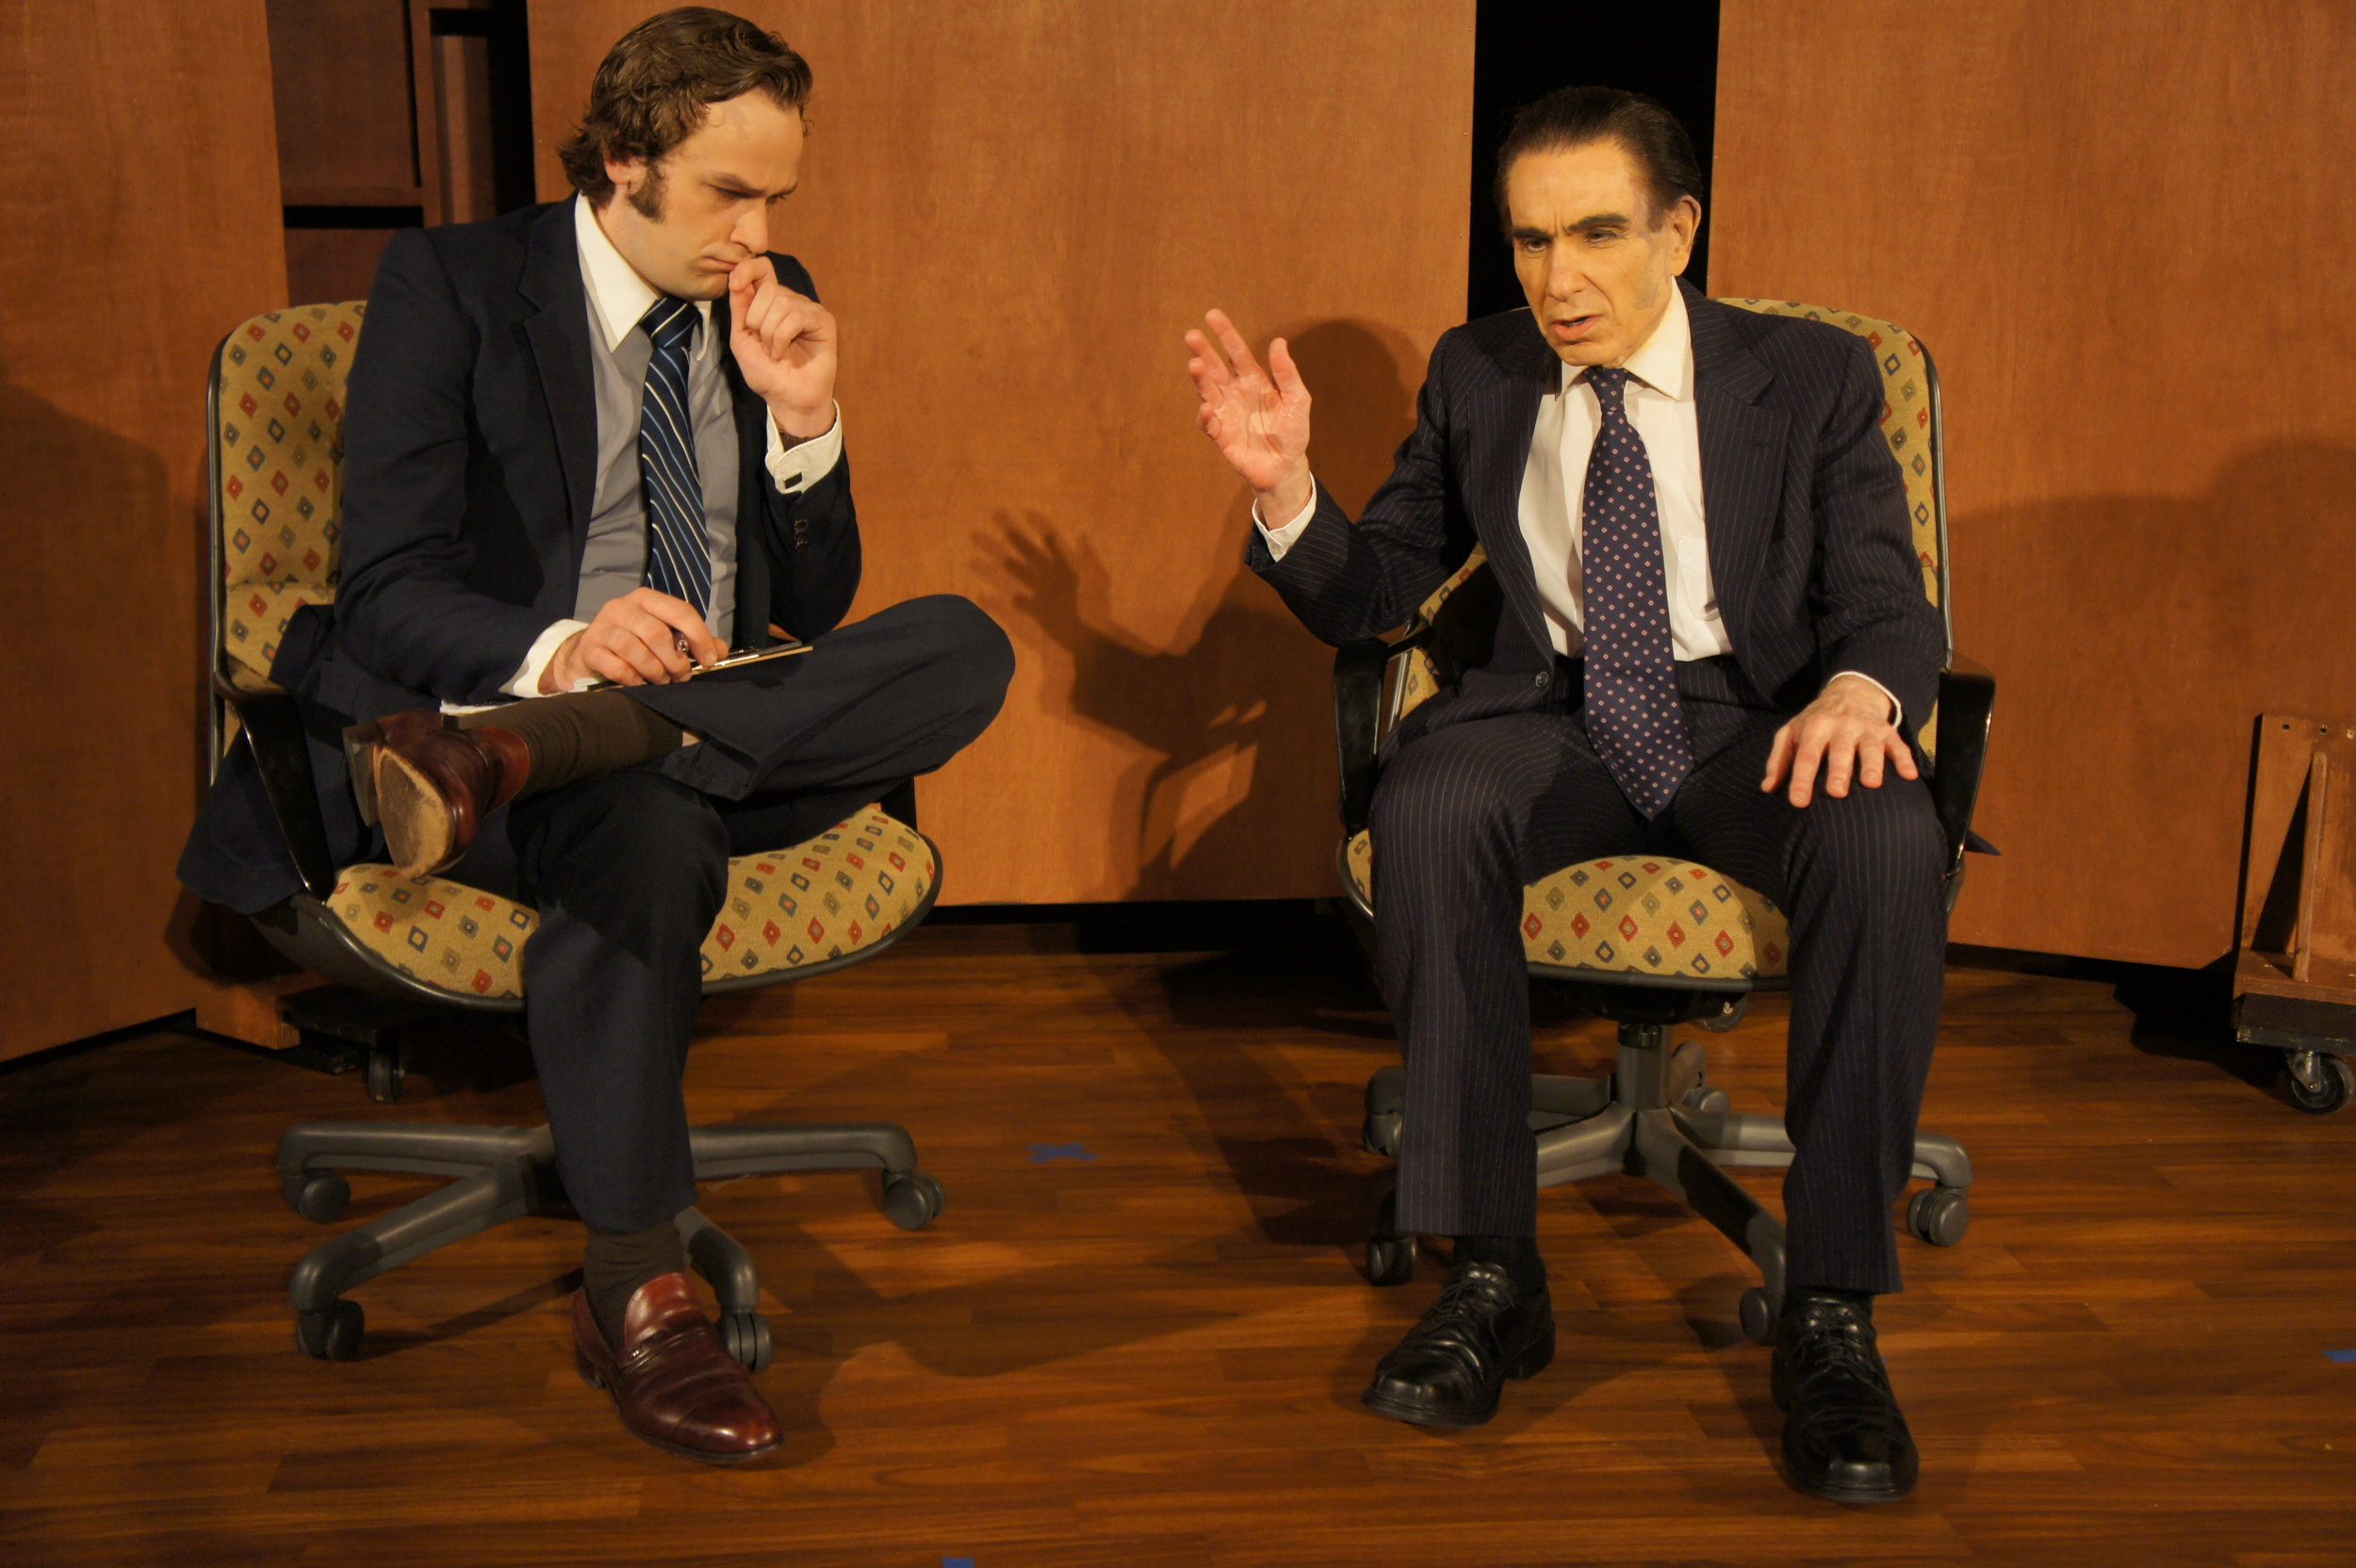 The Frost/Nixon Interview with Sean Lundberg as David Frost and Larry Sinak as Richard M. Nixon